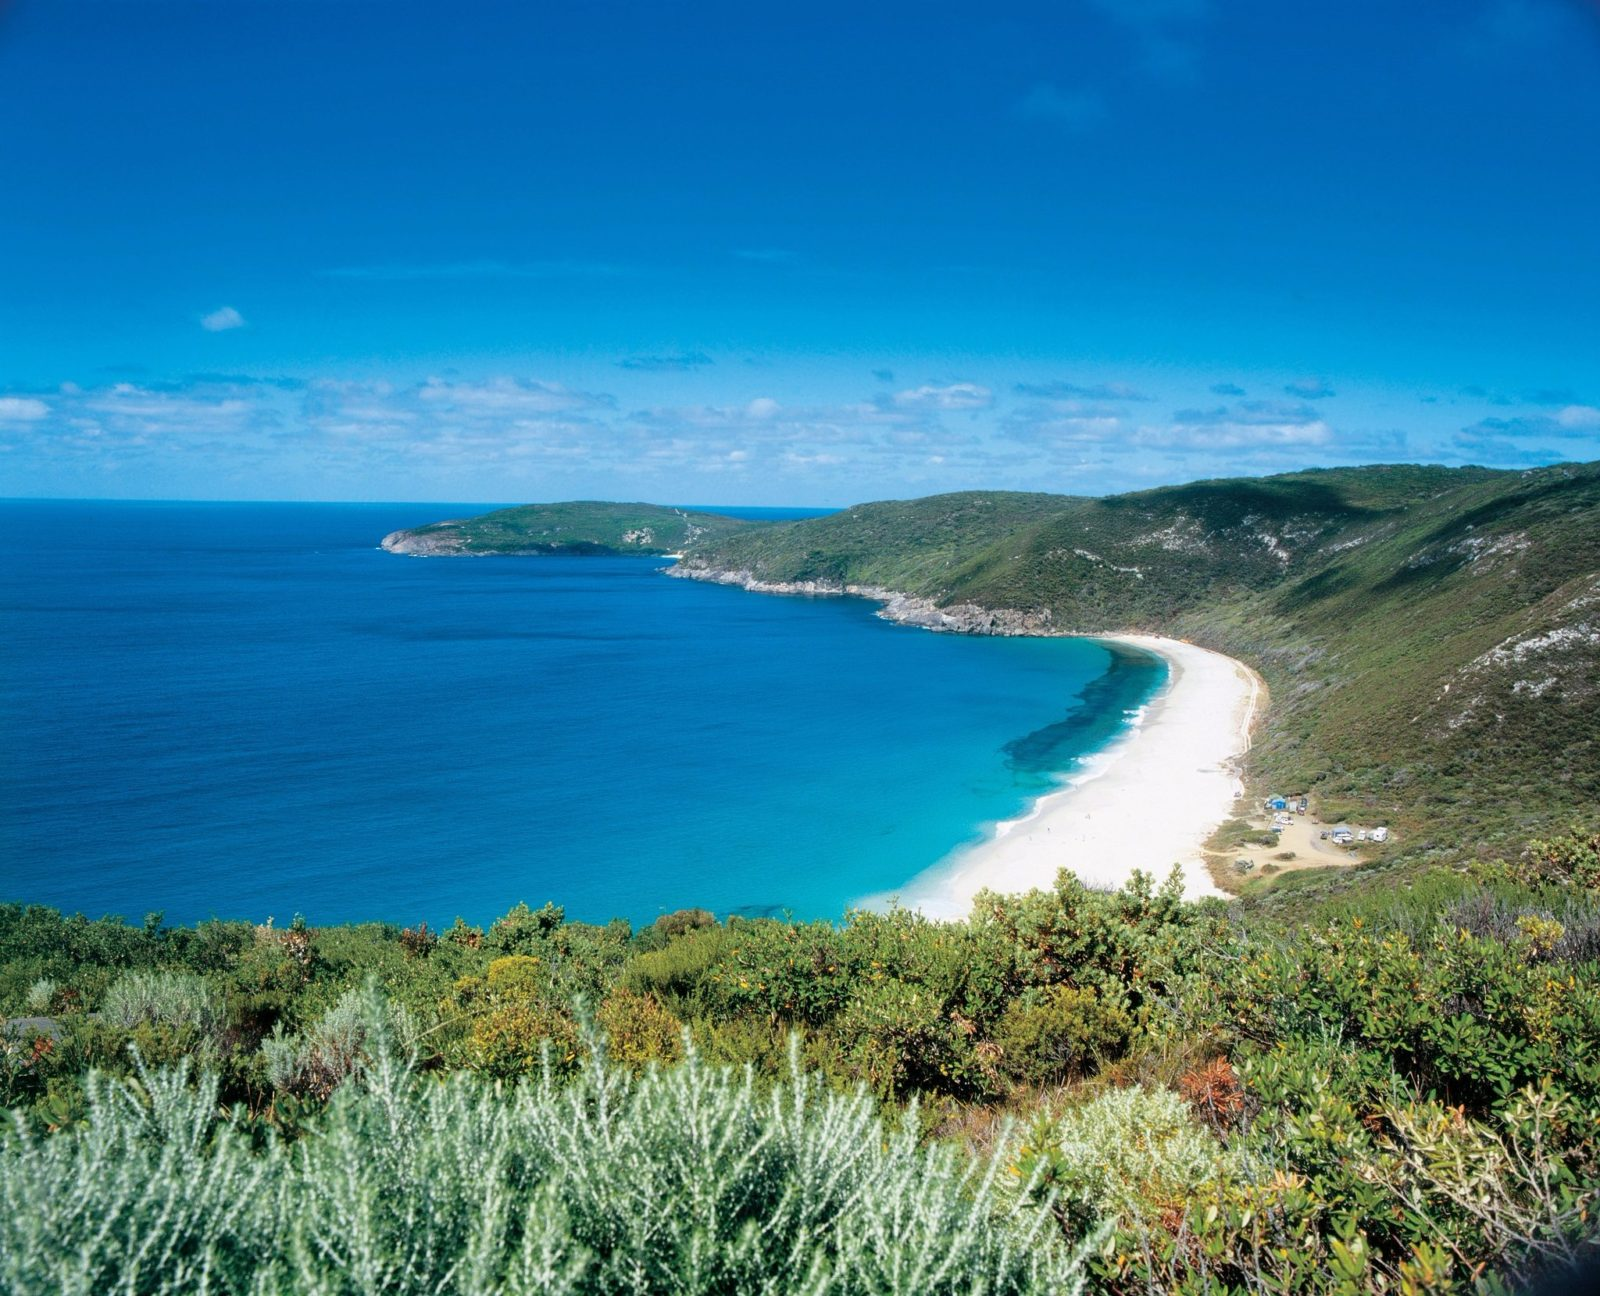 Shelly Beach, West Cape Howe, Western Australia